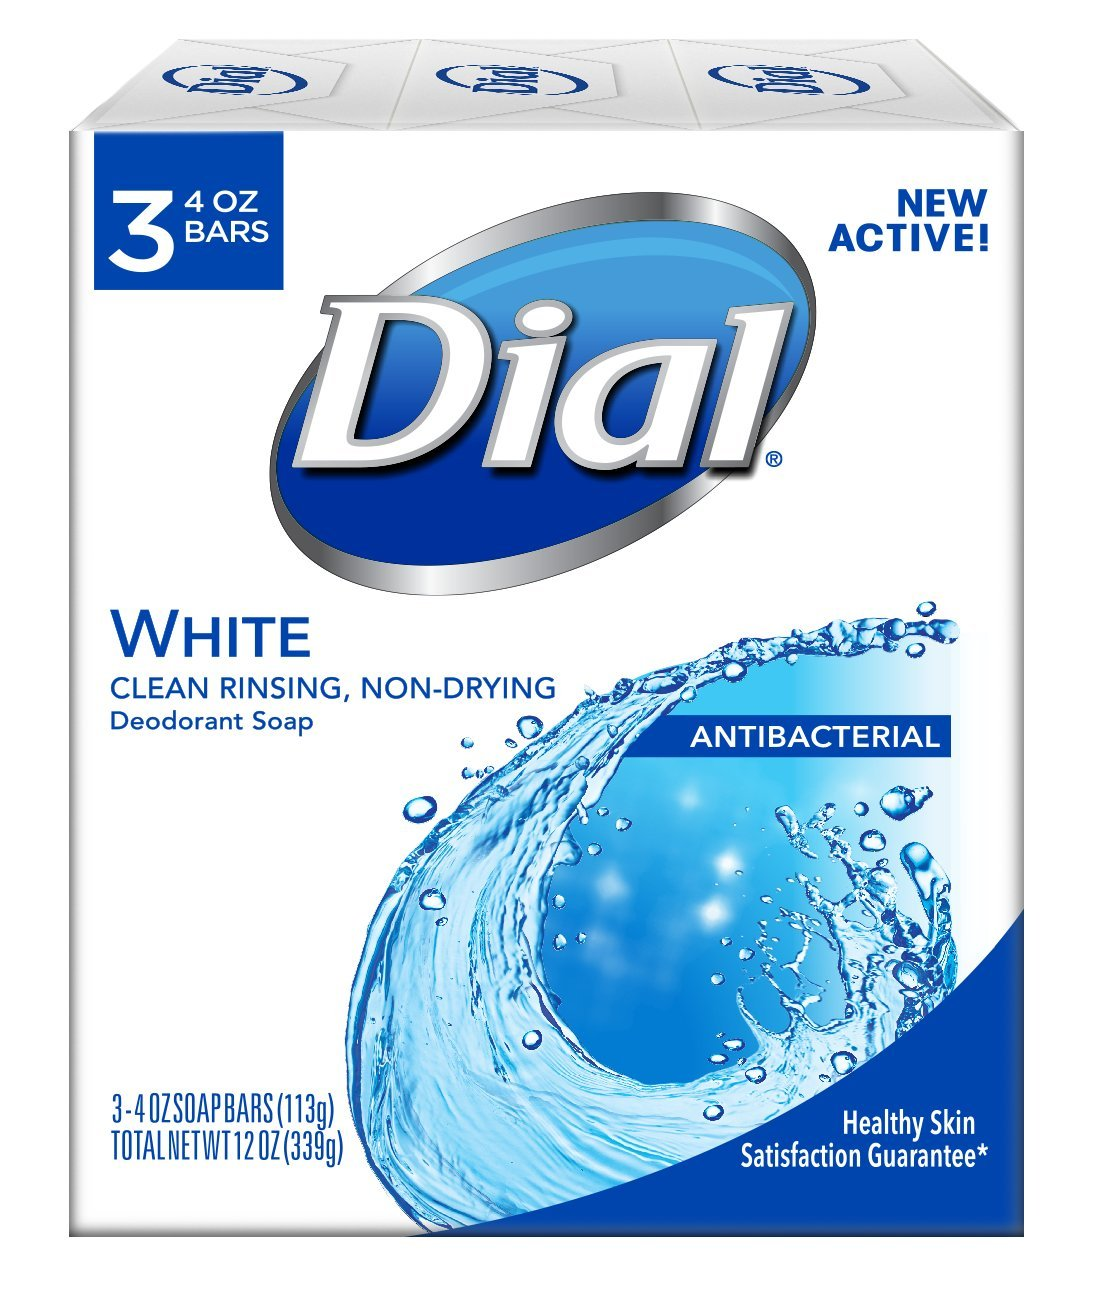 Dial Antibacterial Deodorant Soap, White, 4 Ounce (Pack of 3)Bars